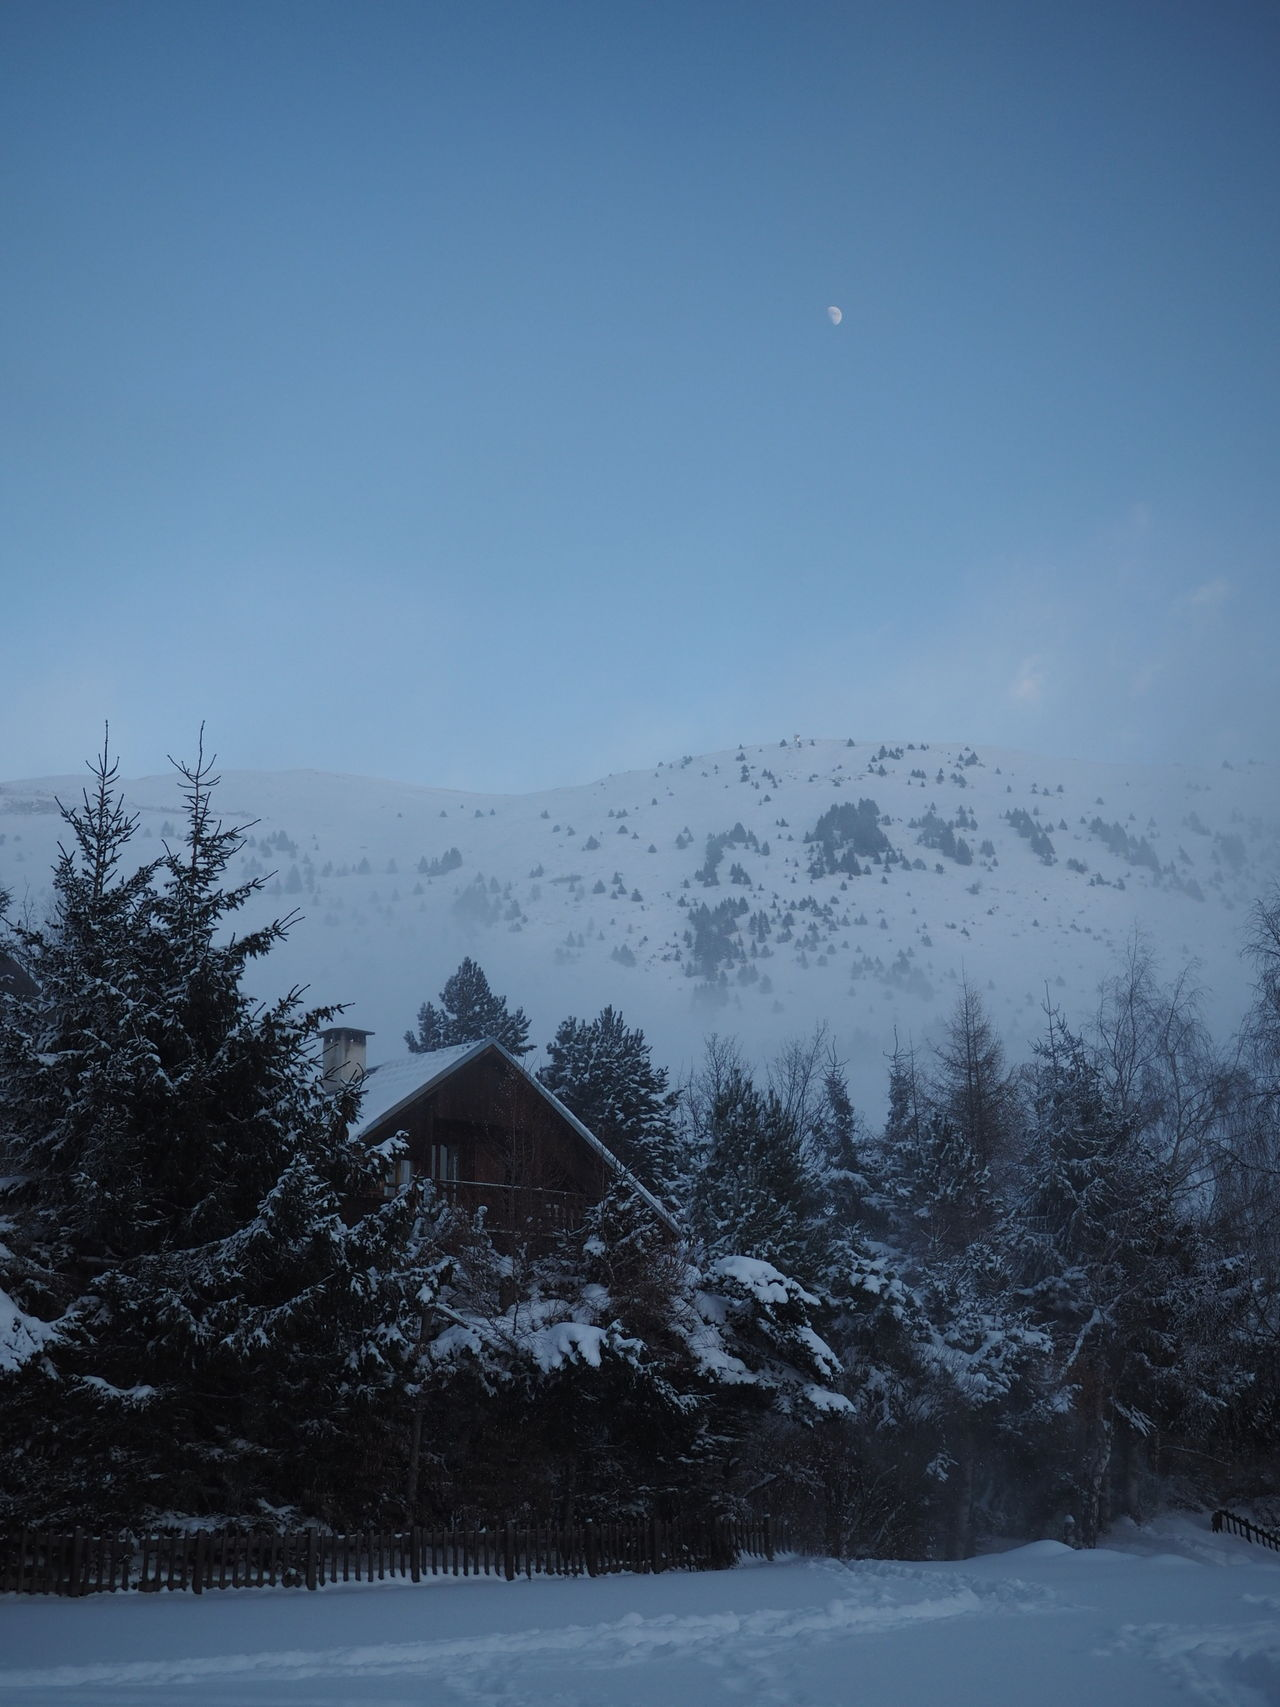 Beauty In Nature Blue Chalet Christmas Christmas Tree Cold Temperature Day Dusk Forest Holiday - Event Nature No People Outdoors Scenics Sky Snow Snowing Tree Winter